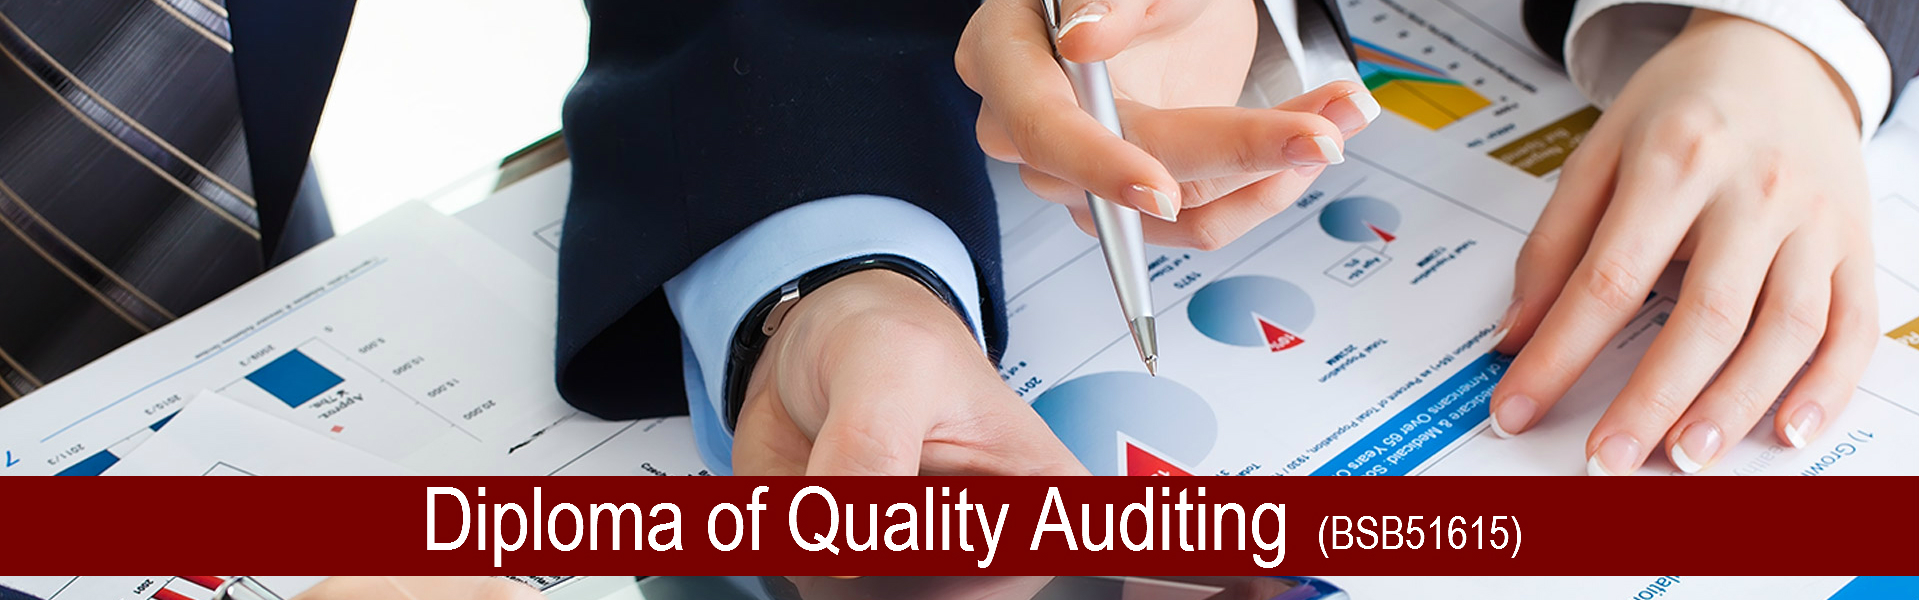 Diploma of Quality Auditing